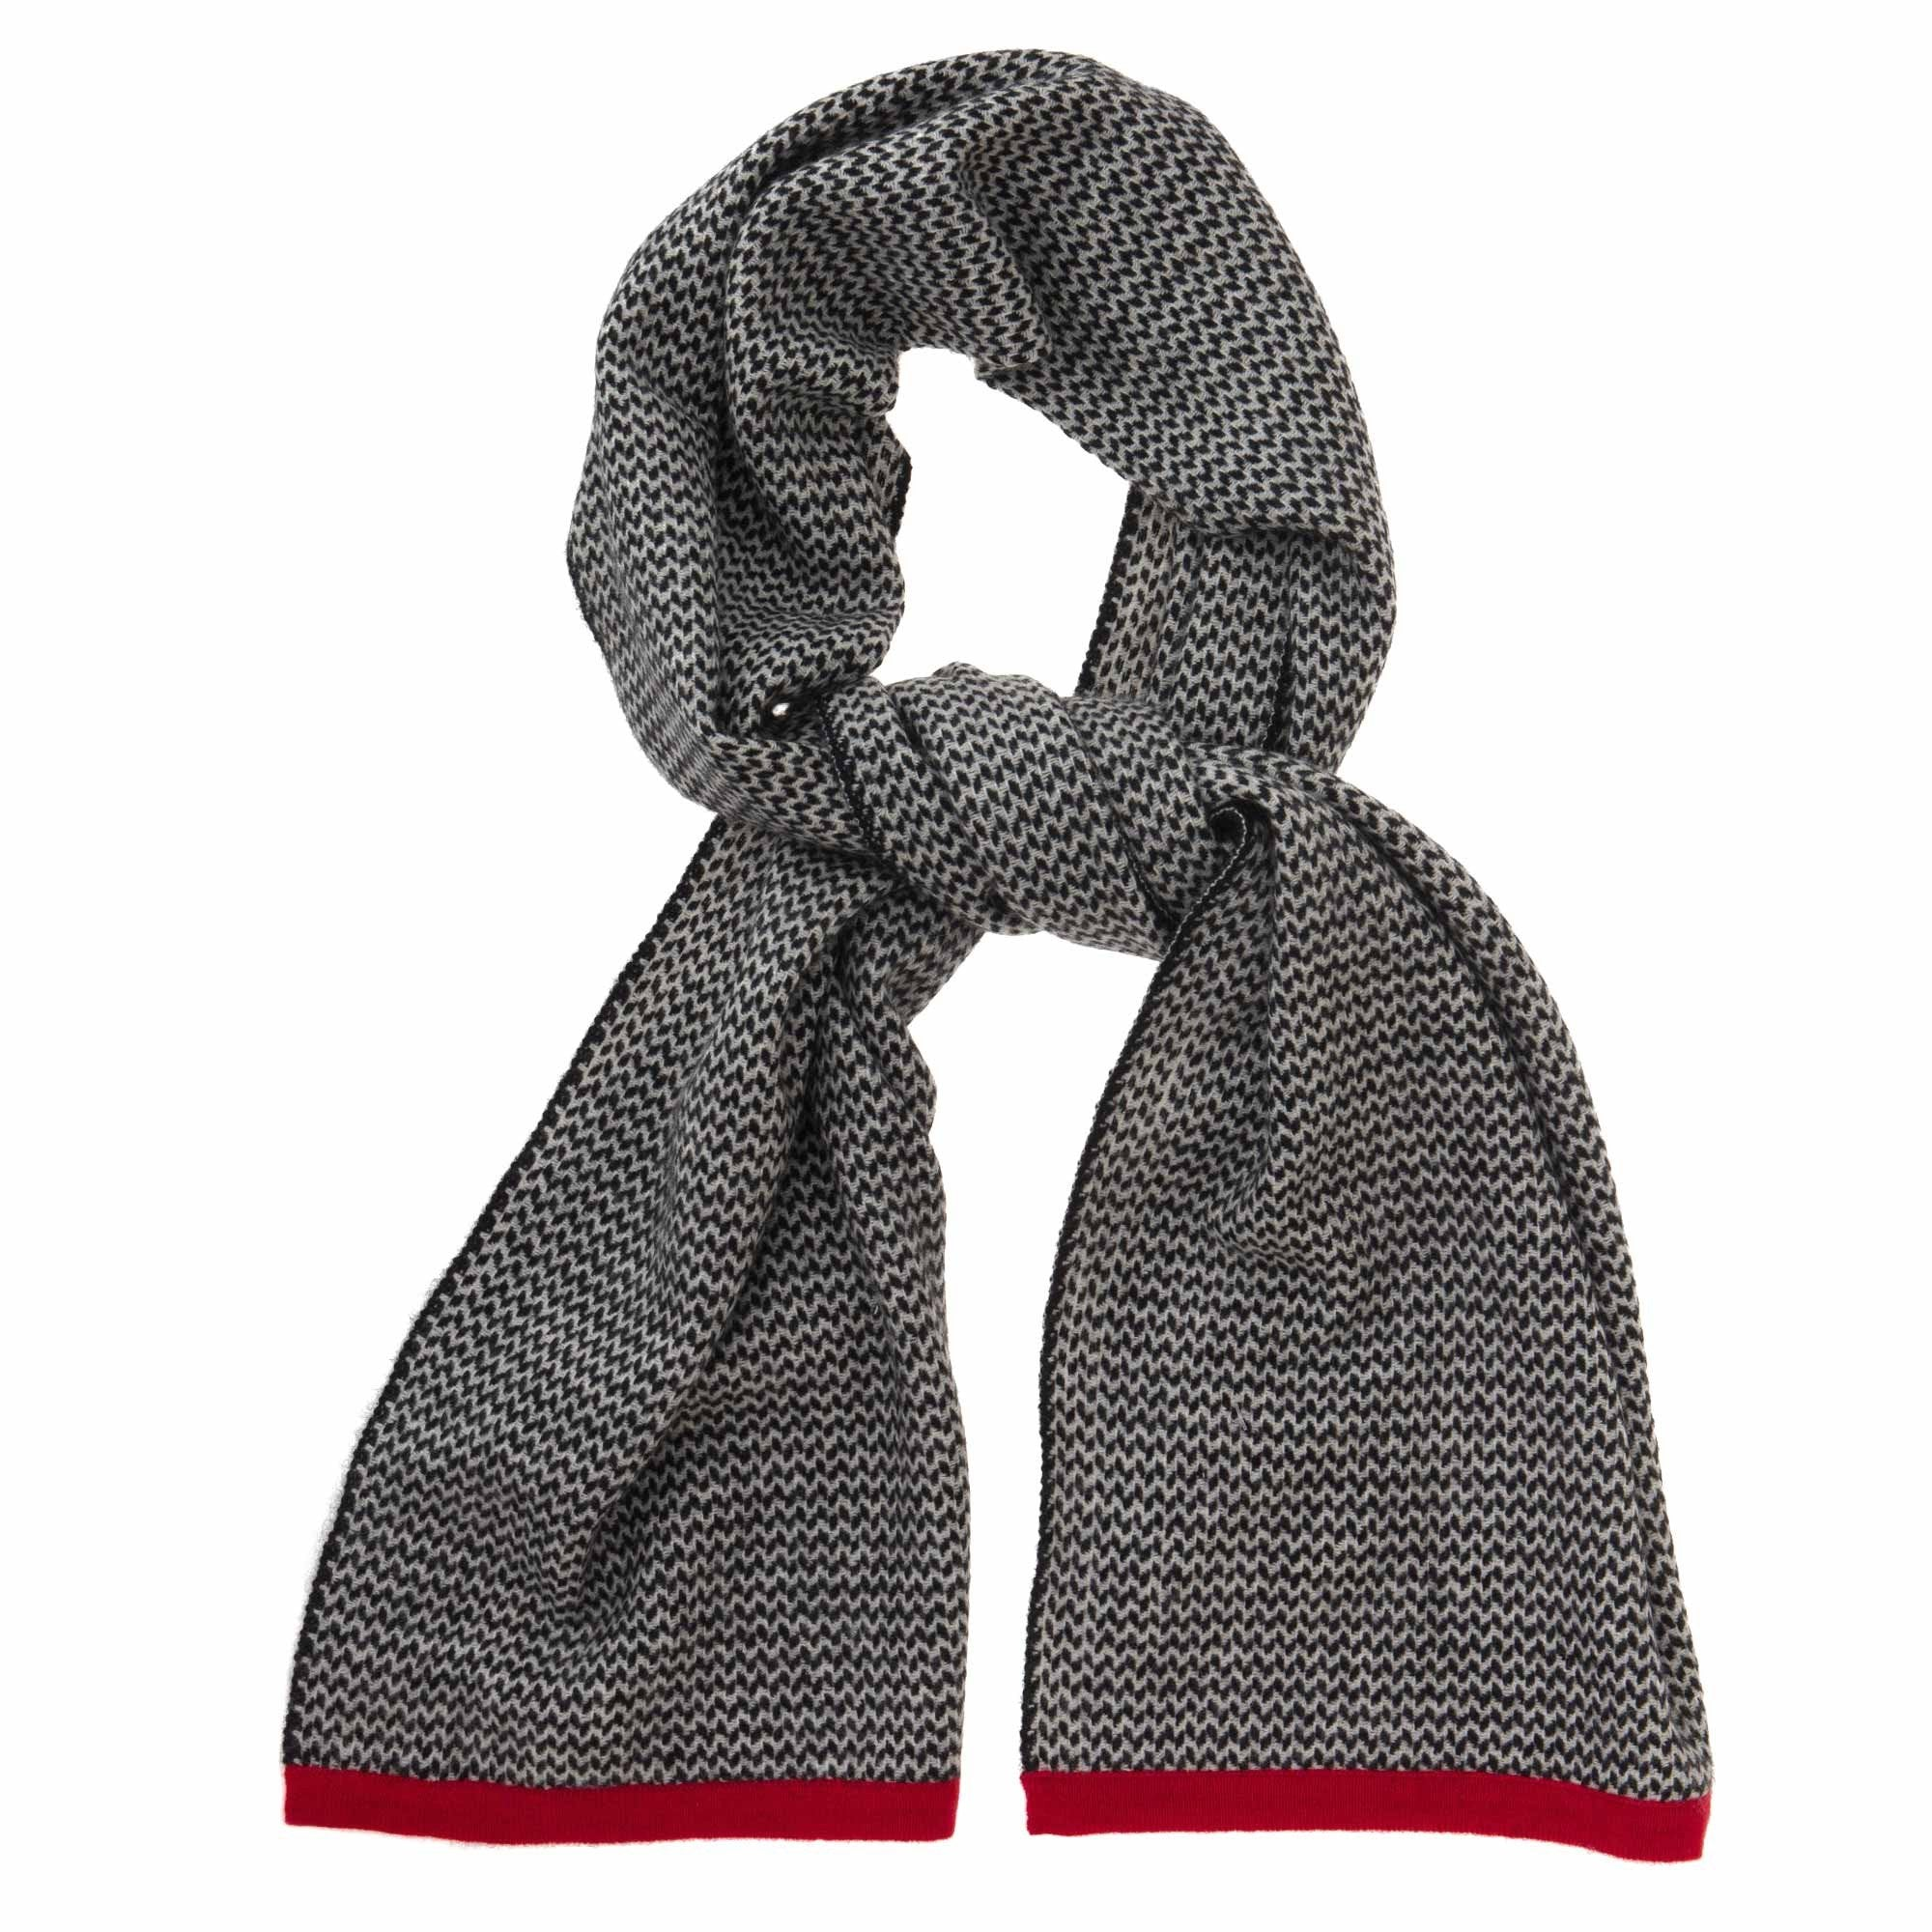 Foligno Cashmere Scarf in black & cream & red | Home & Living inspiration | URBANARA